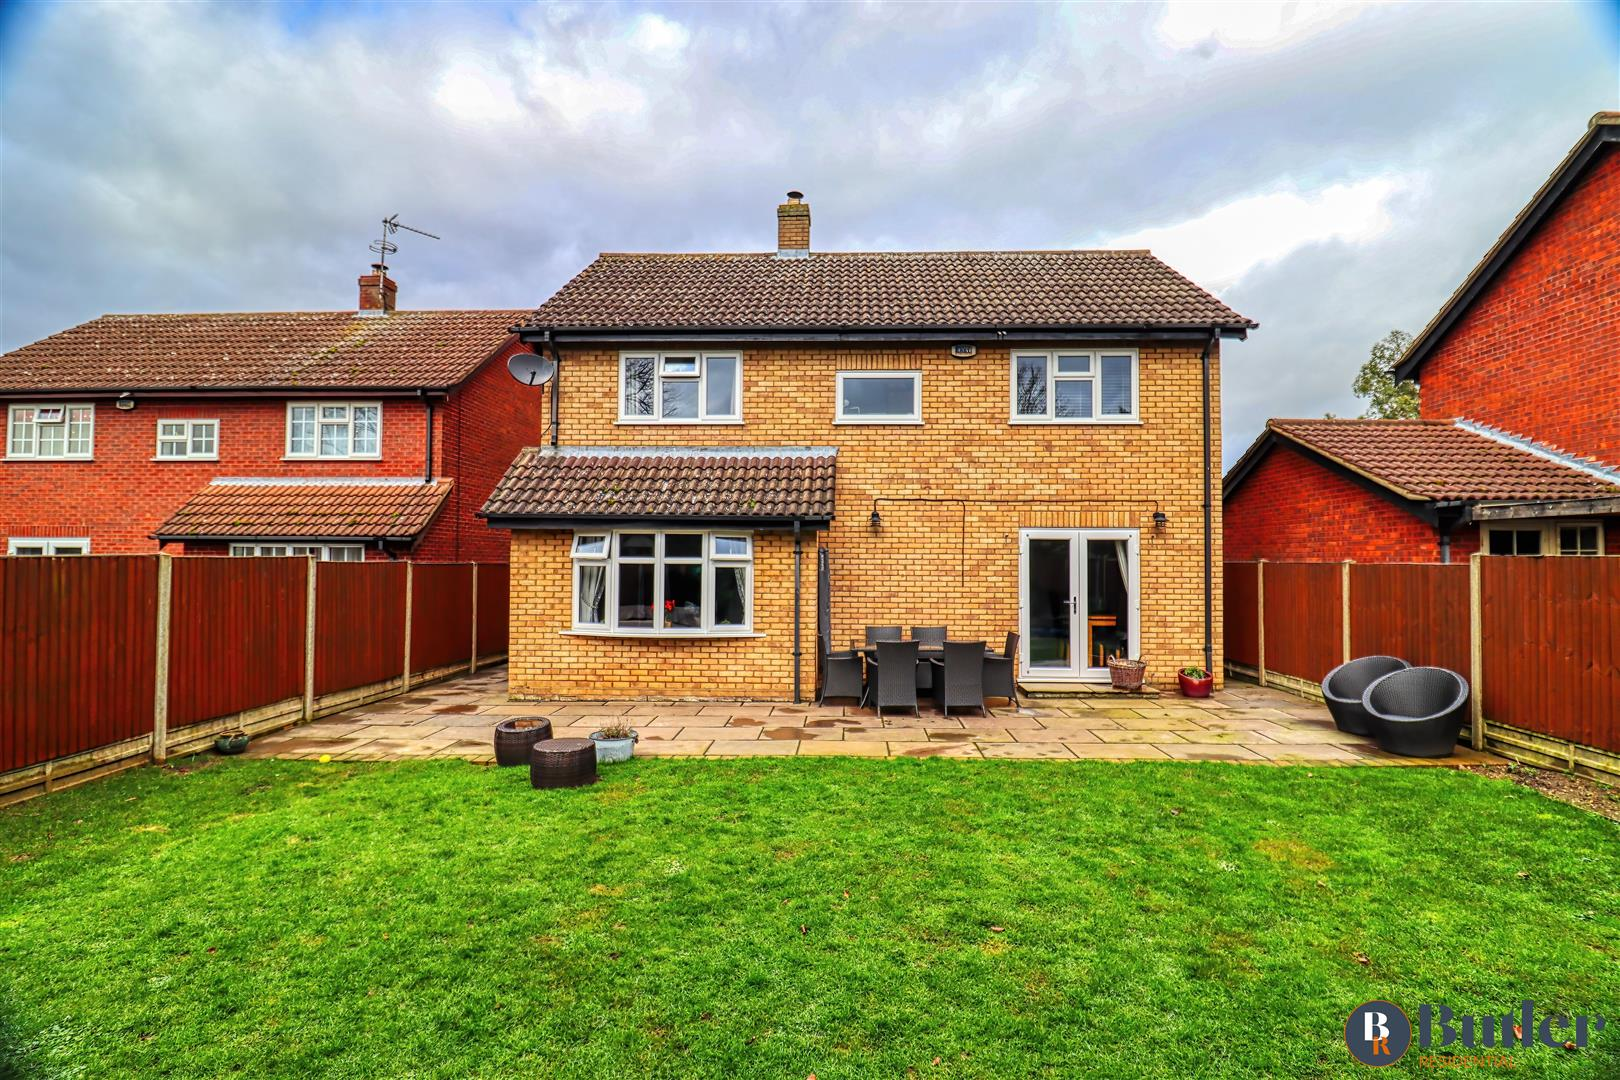 4 bed detached house for sale in Burrows Close, Shefford - Property Image 1